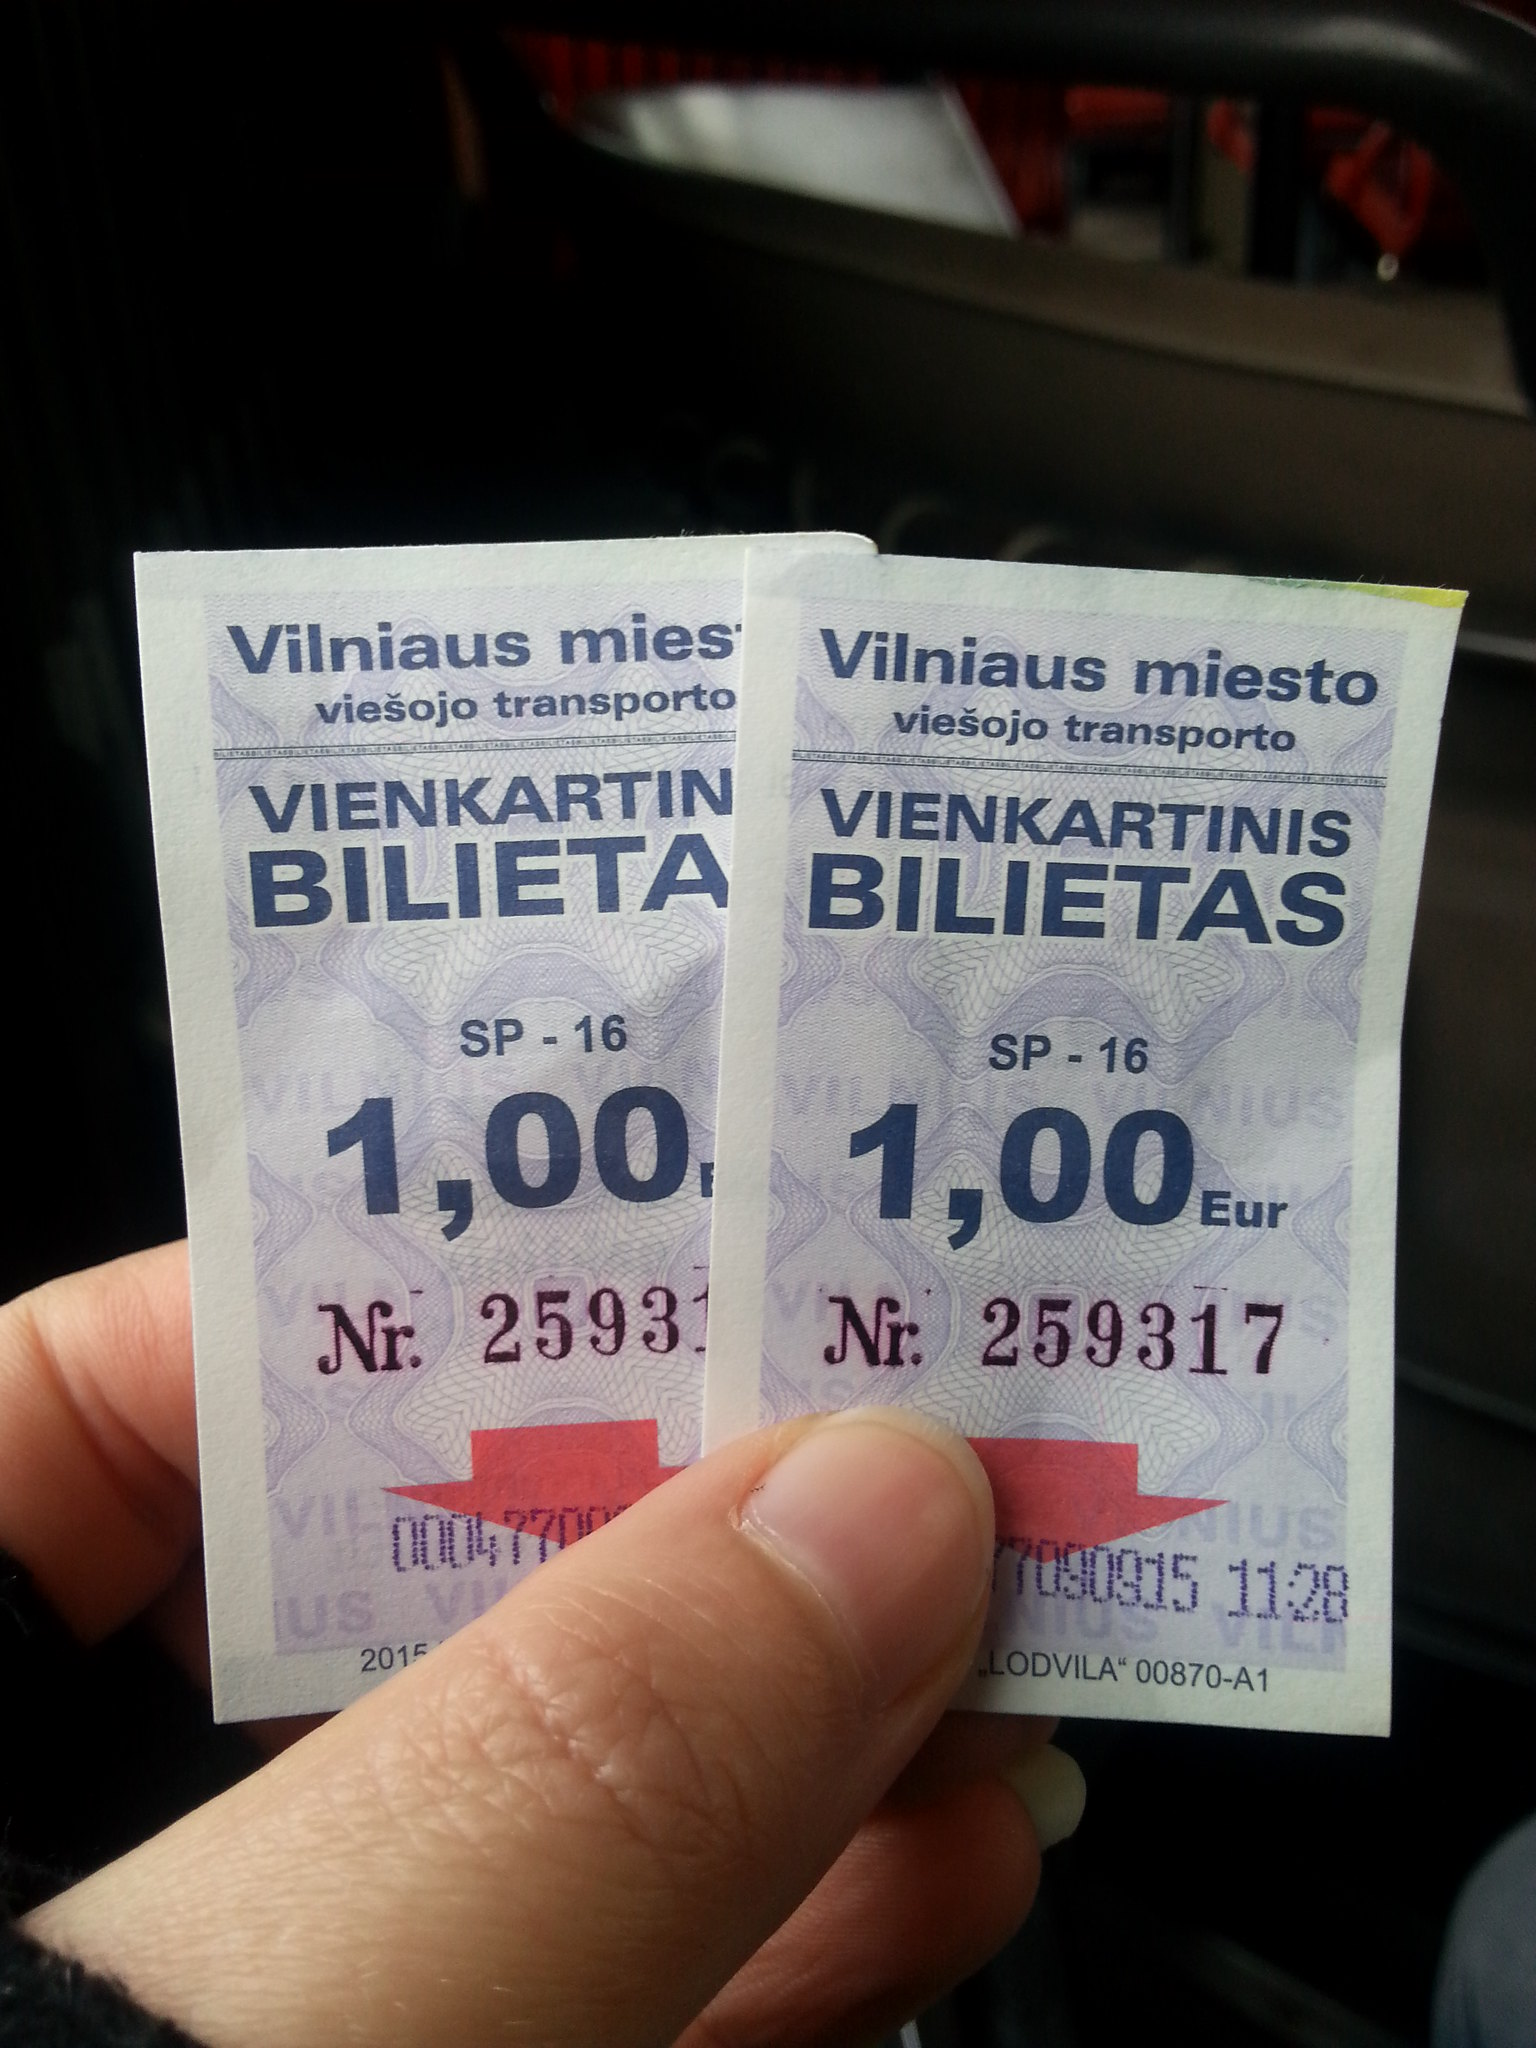 City breaks in Europe are great for budget travellers; Bus tickets in Vilnius cost 1 euro